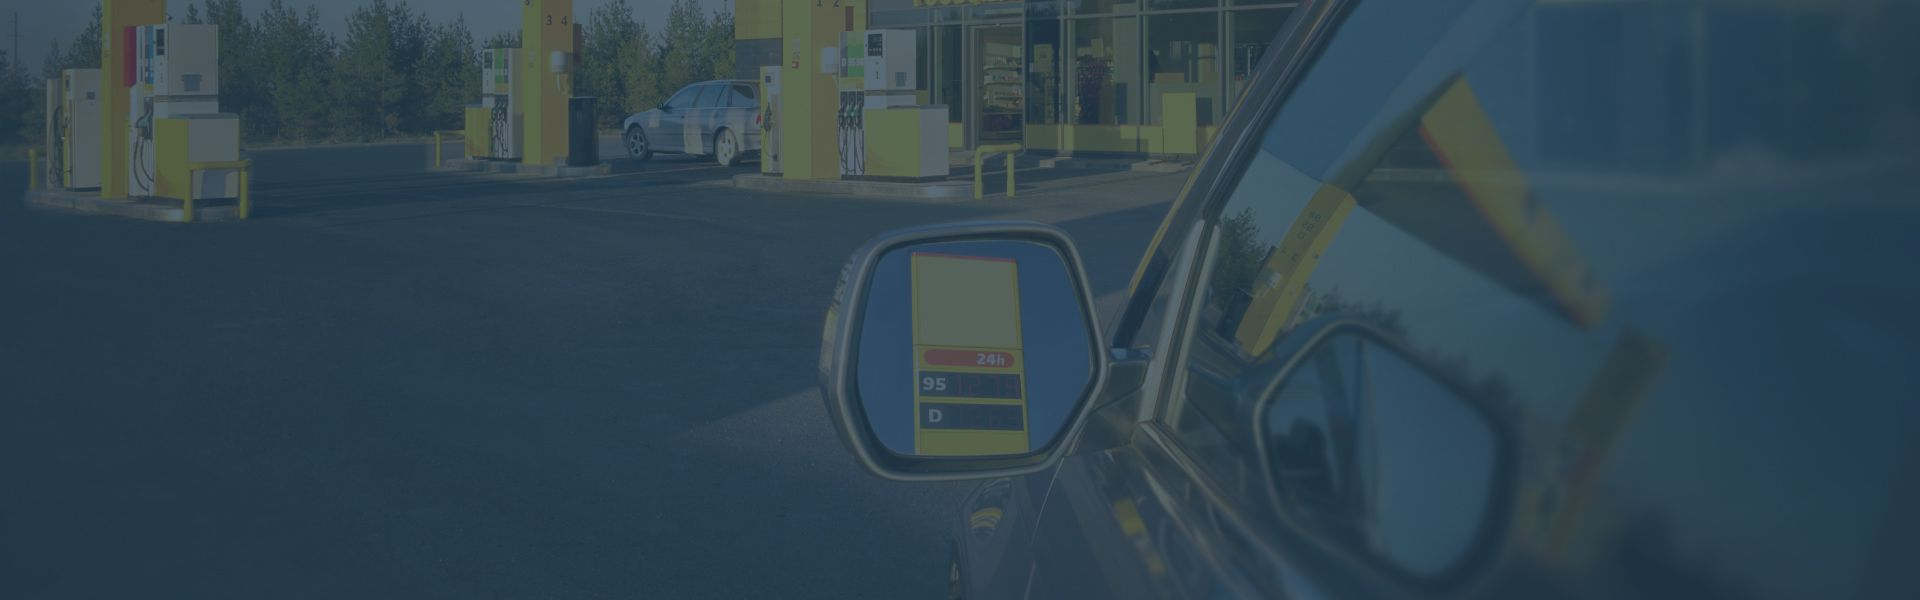 /in-car-payment-systems-unlock-new-opportunities-for-m2m-economy-ah1435wg feature image